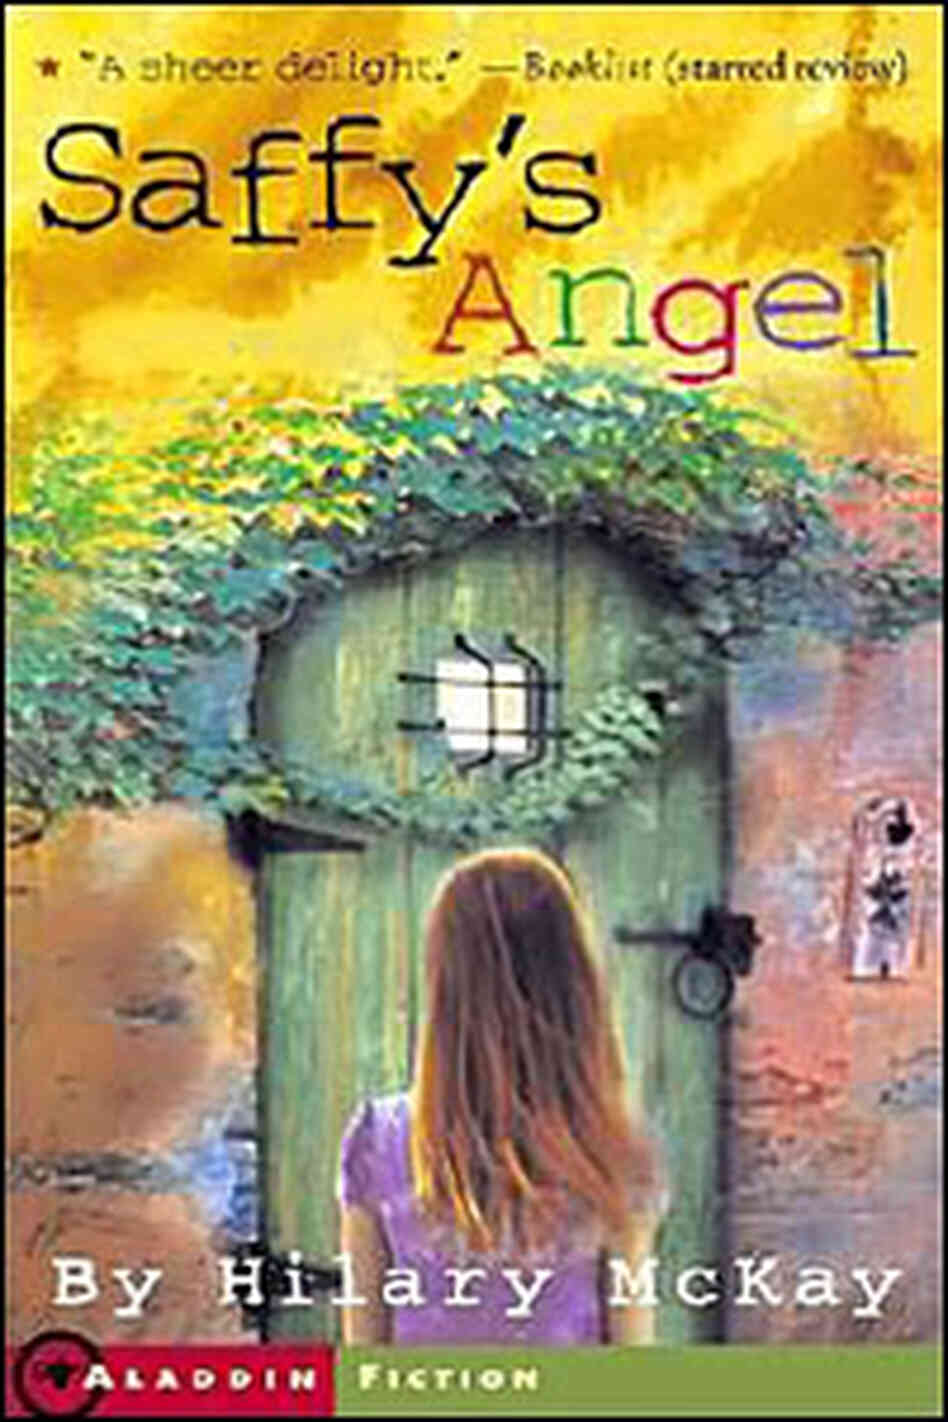 saffys angel book report Saffy's angel has 4 reviews and 3 ratings i read this last year for a book report i loved it it's well written and a really inspiring story 0 reply.